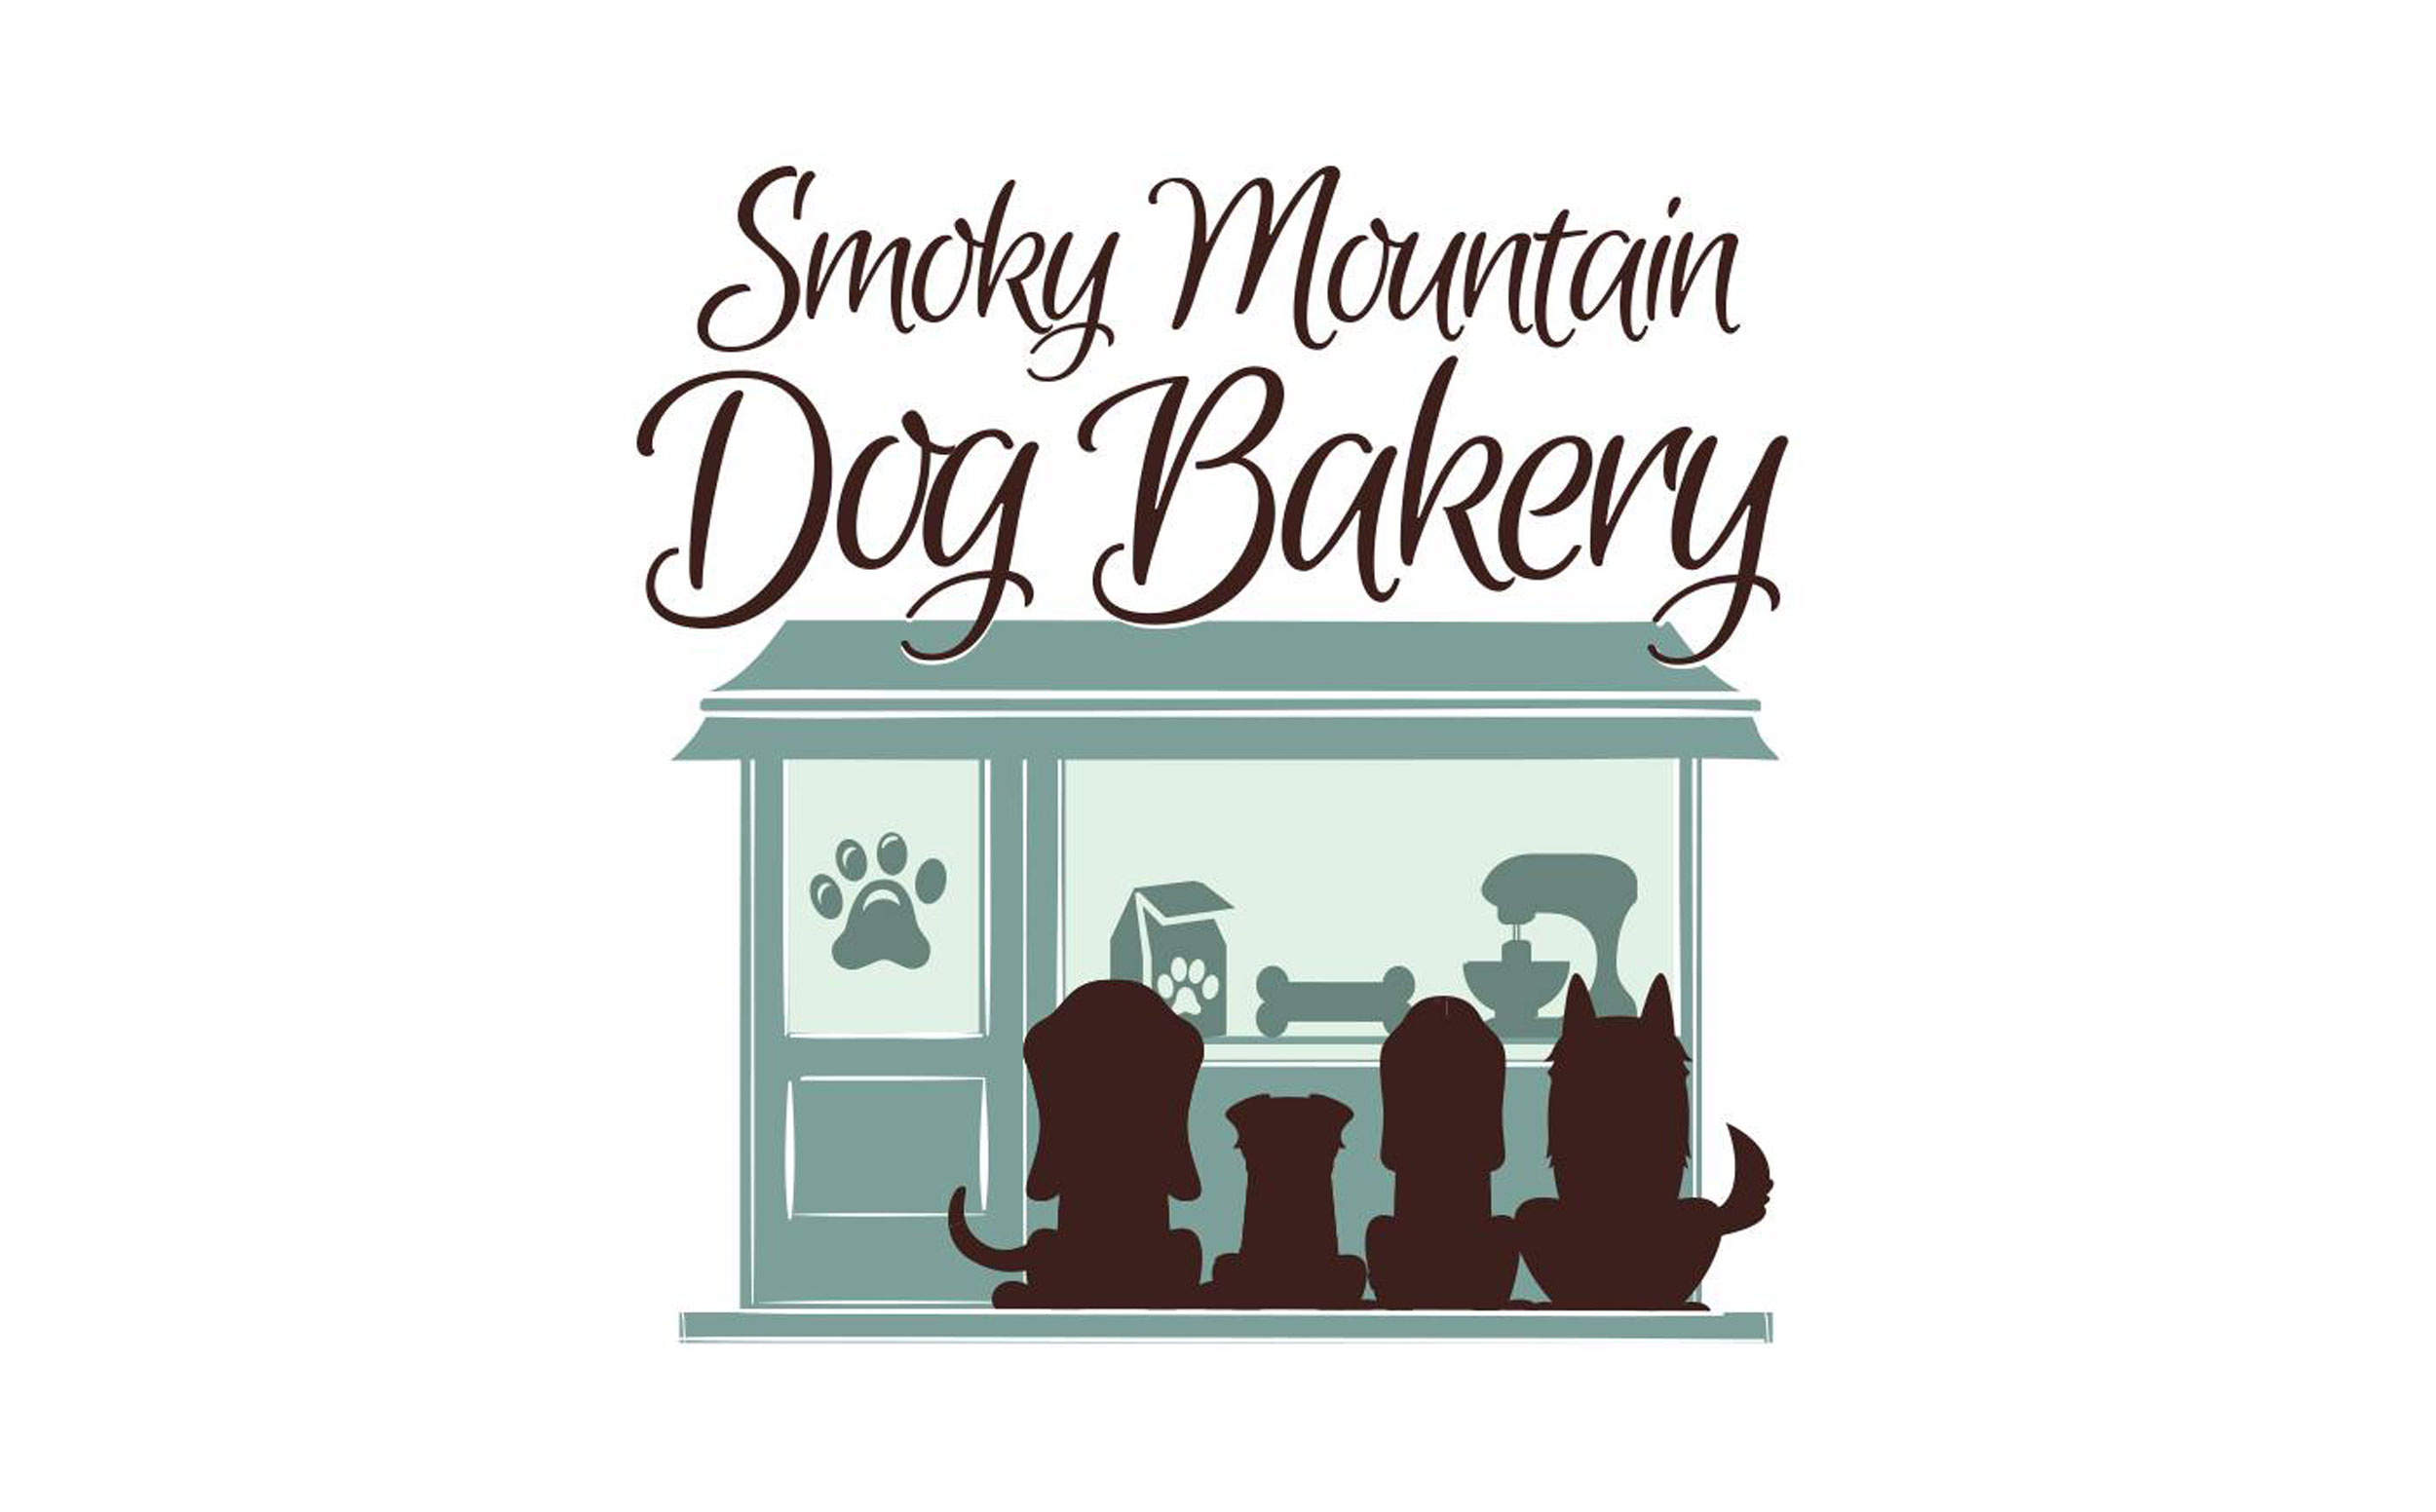 Smoky Mountain Dog Bakery